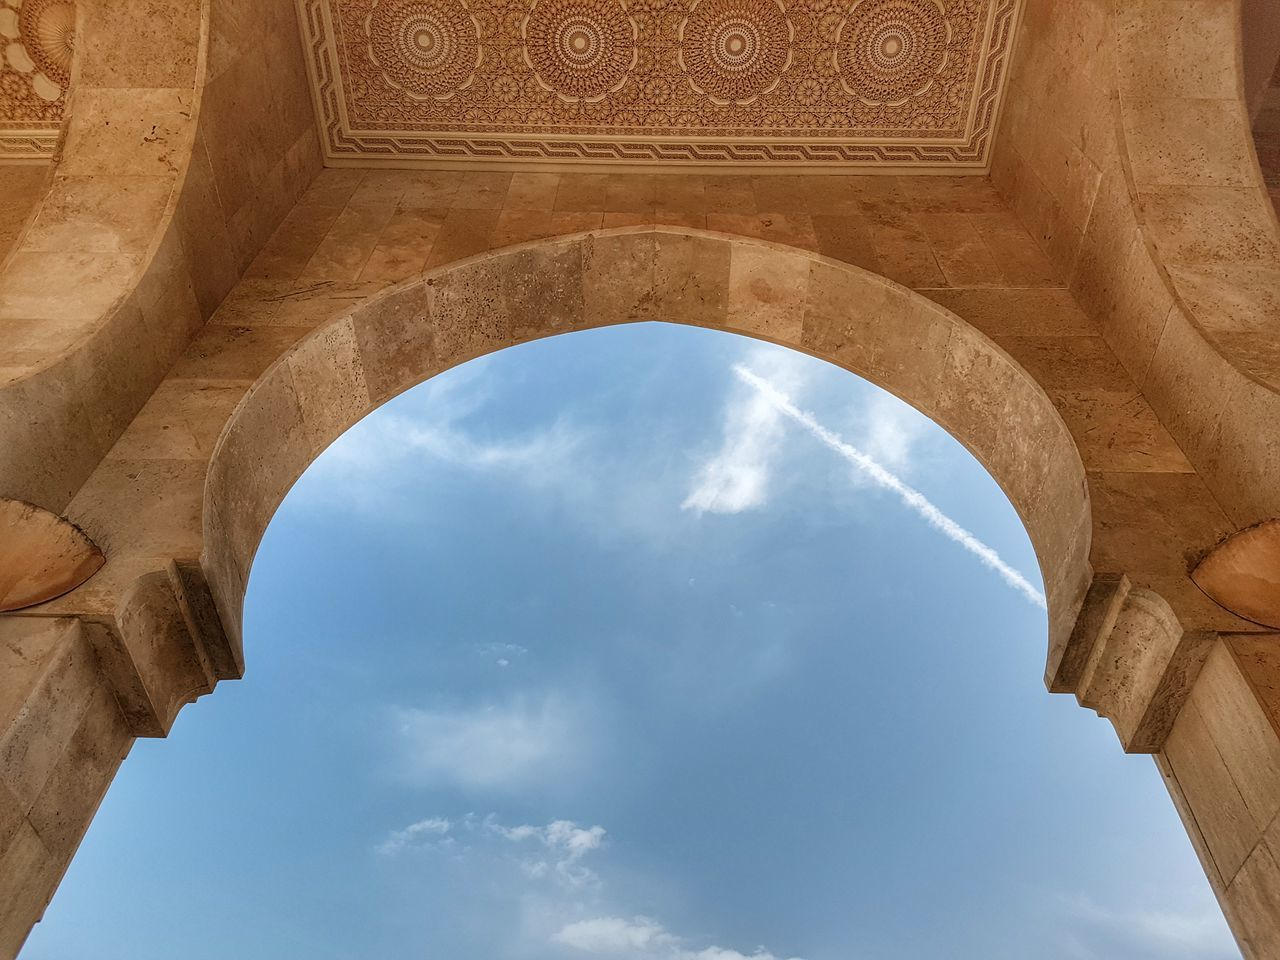 Architecture Arch History Travel Destinations Religion Ancient Old Ruin Low Angle View Monument Archaeology Stone Material Travel Architectural Column Built Structure Day Ancient Civilization Marble Dome Sky Beauty Casablanca, Morocco